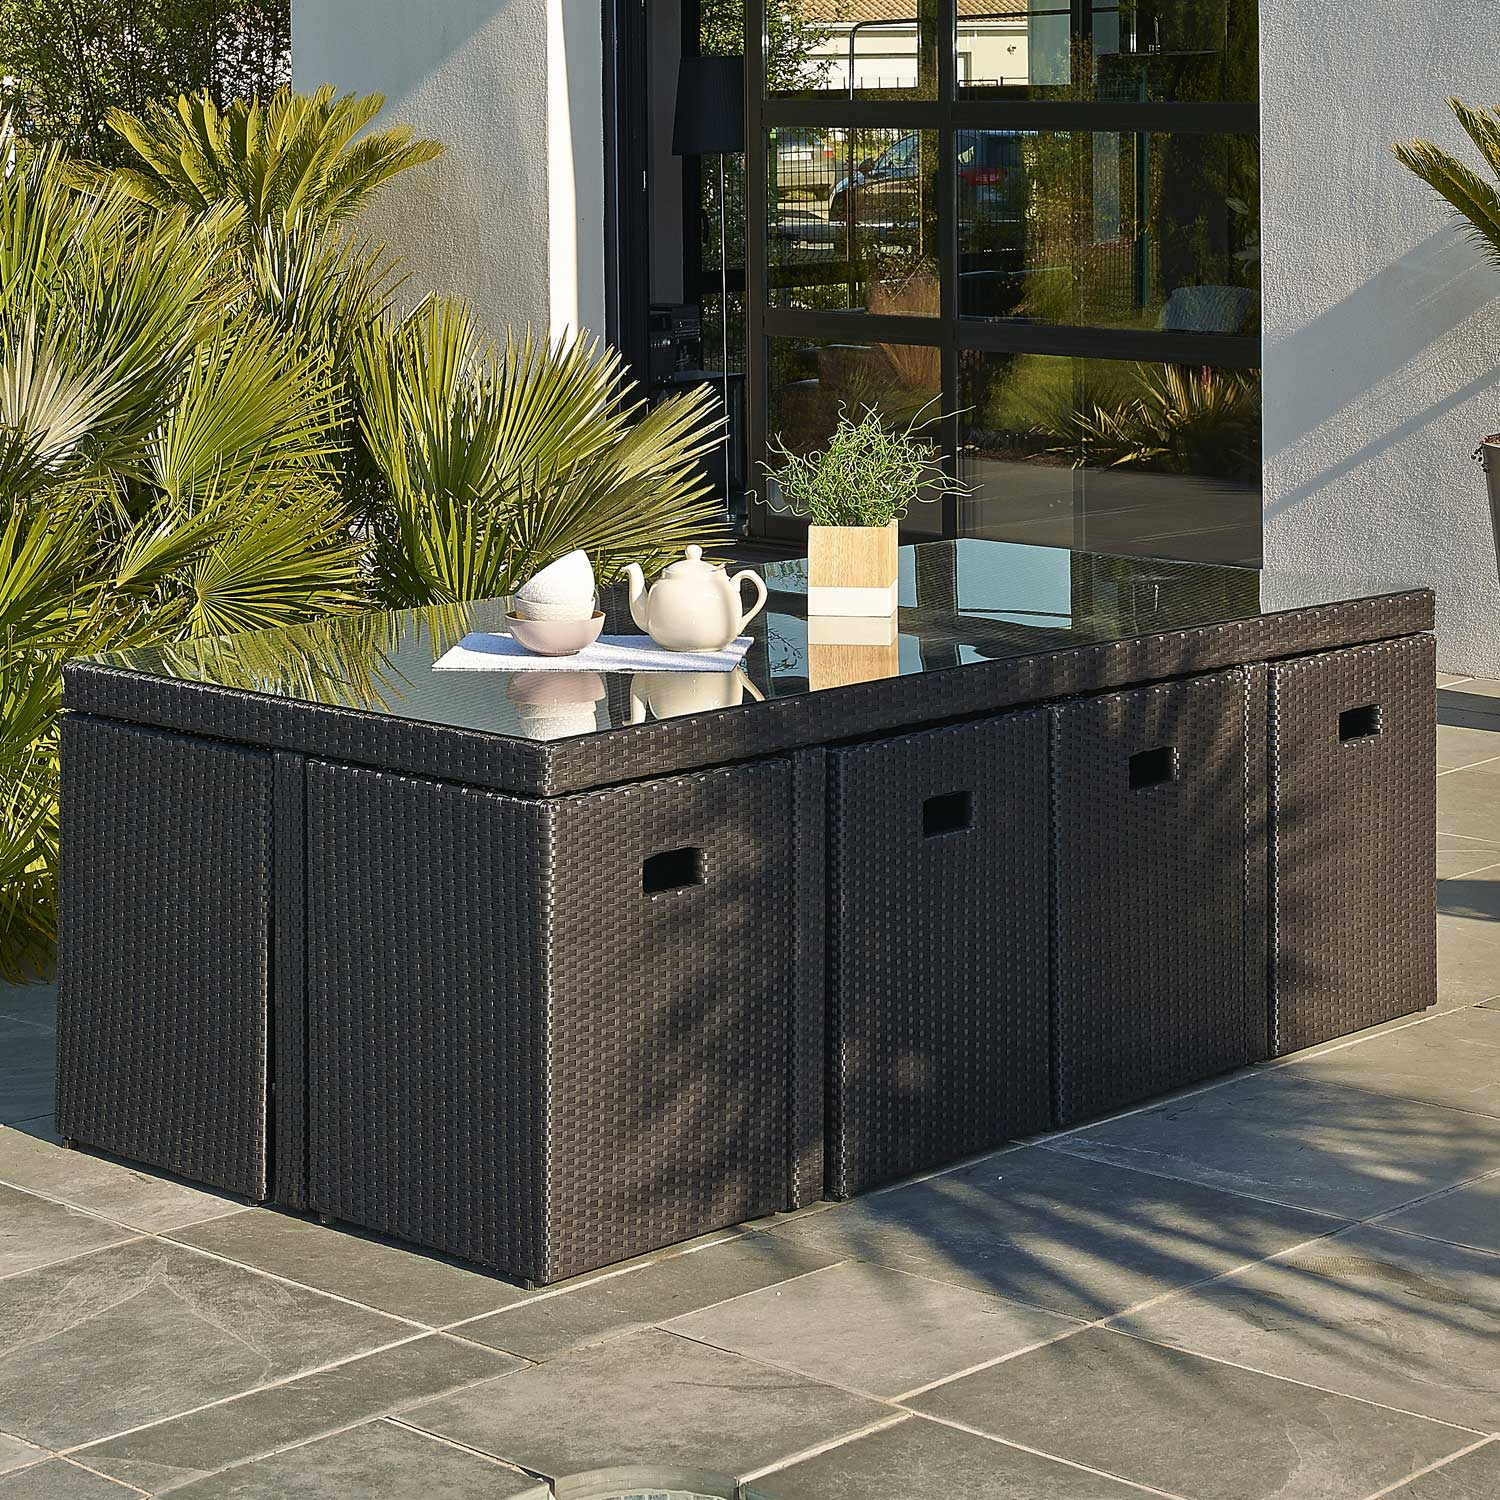 Salon de jardin encastrable r sine tress e noir 1 table - Salon de jardin resine tressee carrefour ...